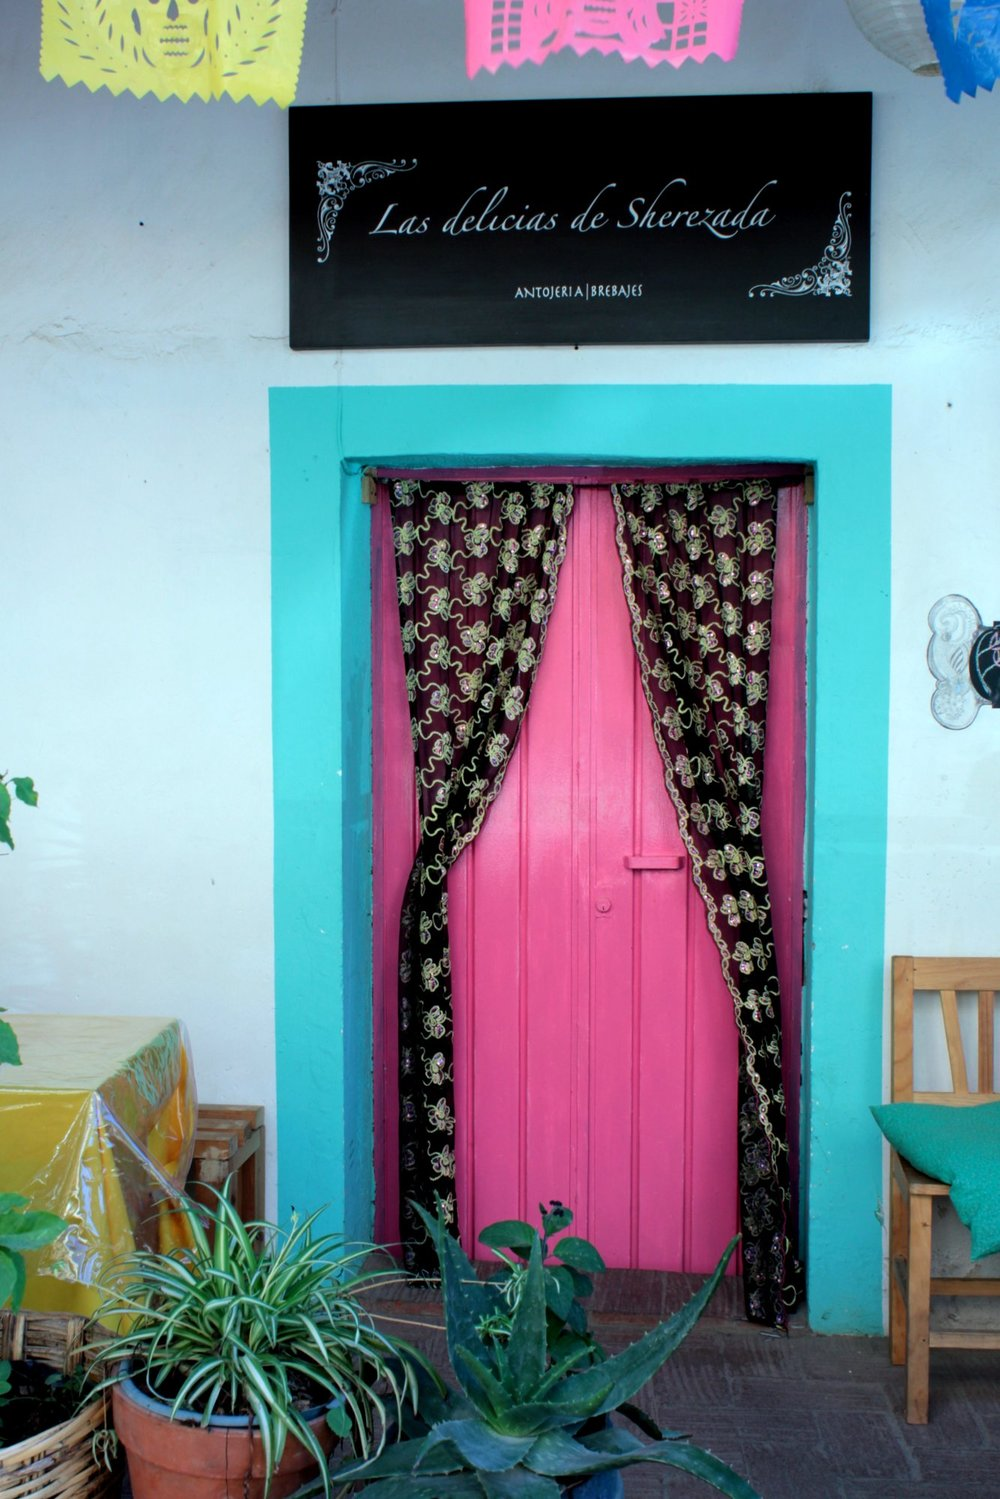 And more pink, on the door of Las delicias de Sherezad (the delights of Sheherezade) - the restaurant where we had the most delicious lunch served by the Syrian French chef.  Exquisite!